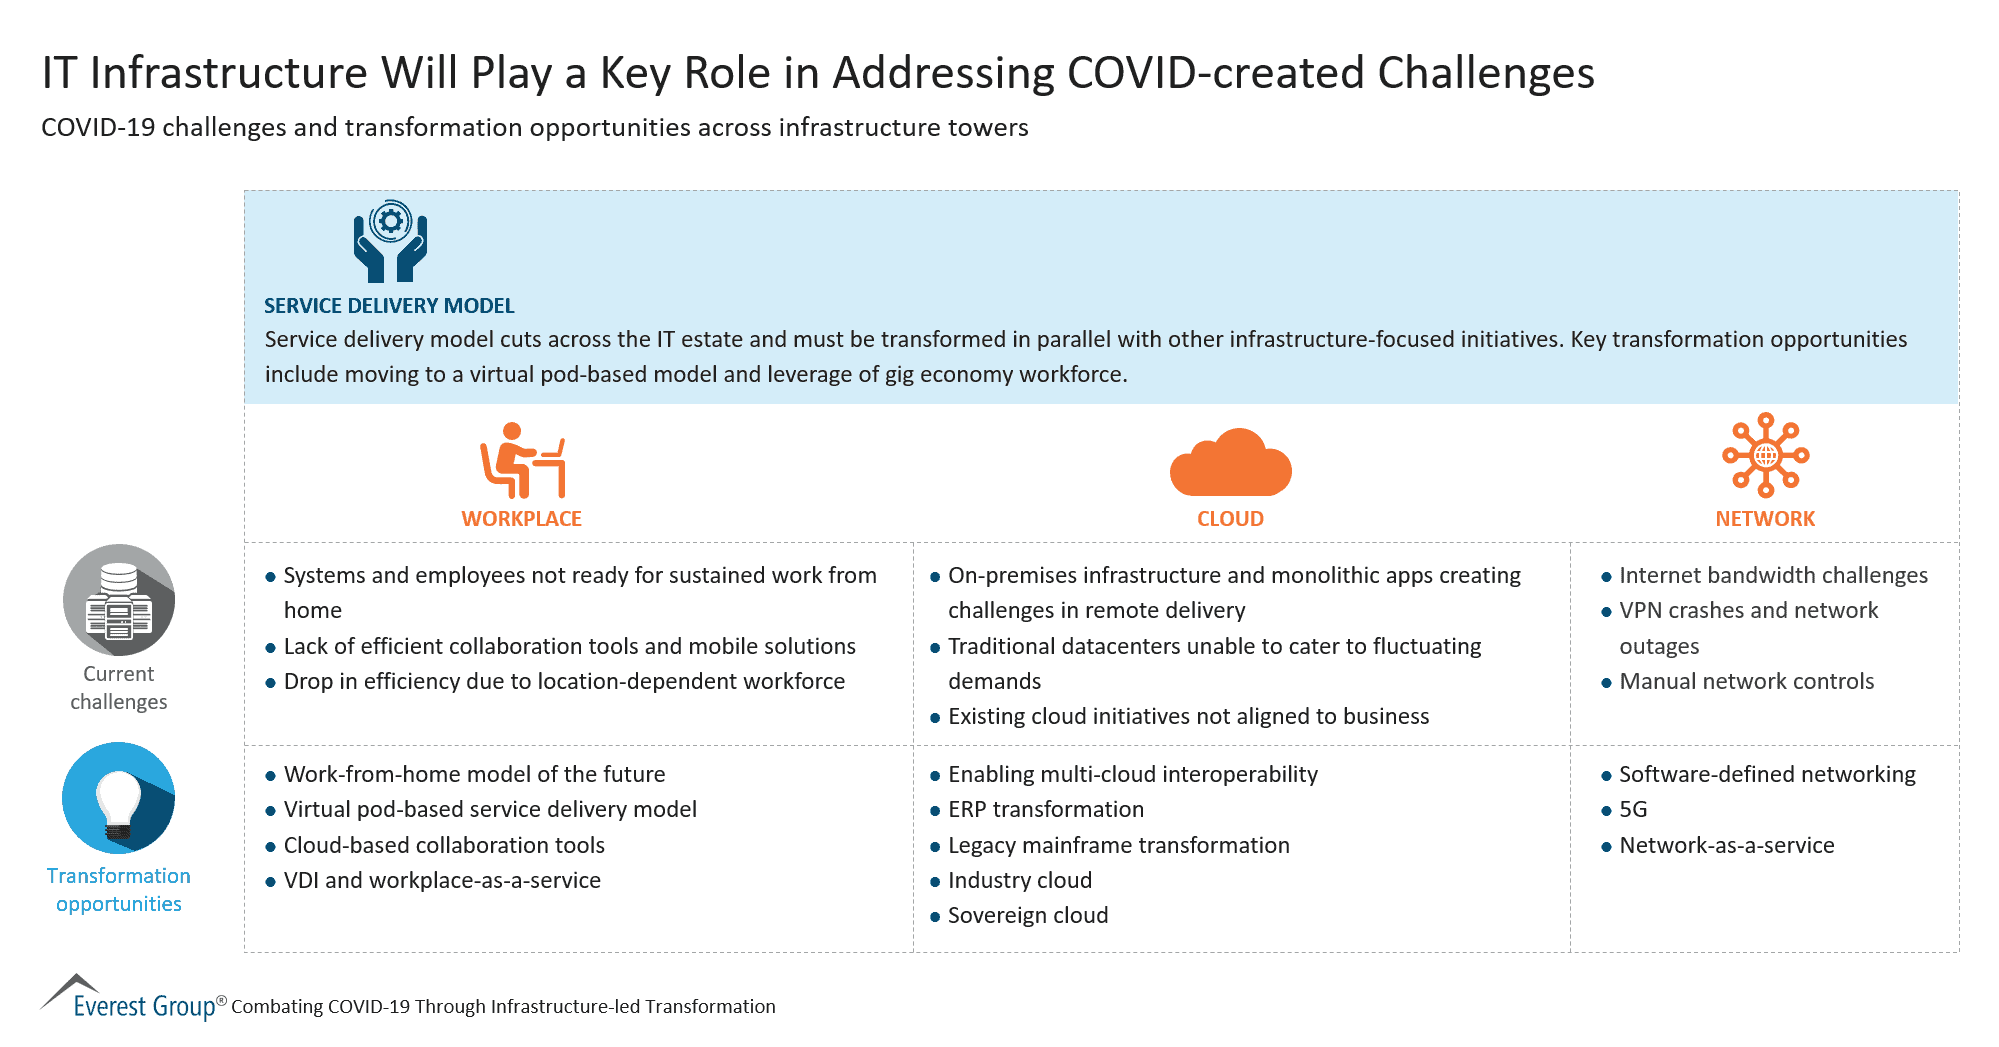 IT Infrastructure Will Play a Key Role in Addressing COVID-created Challenges